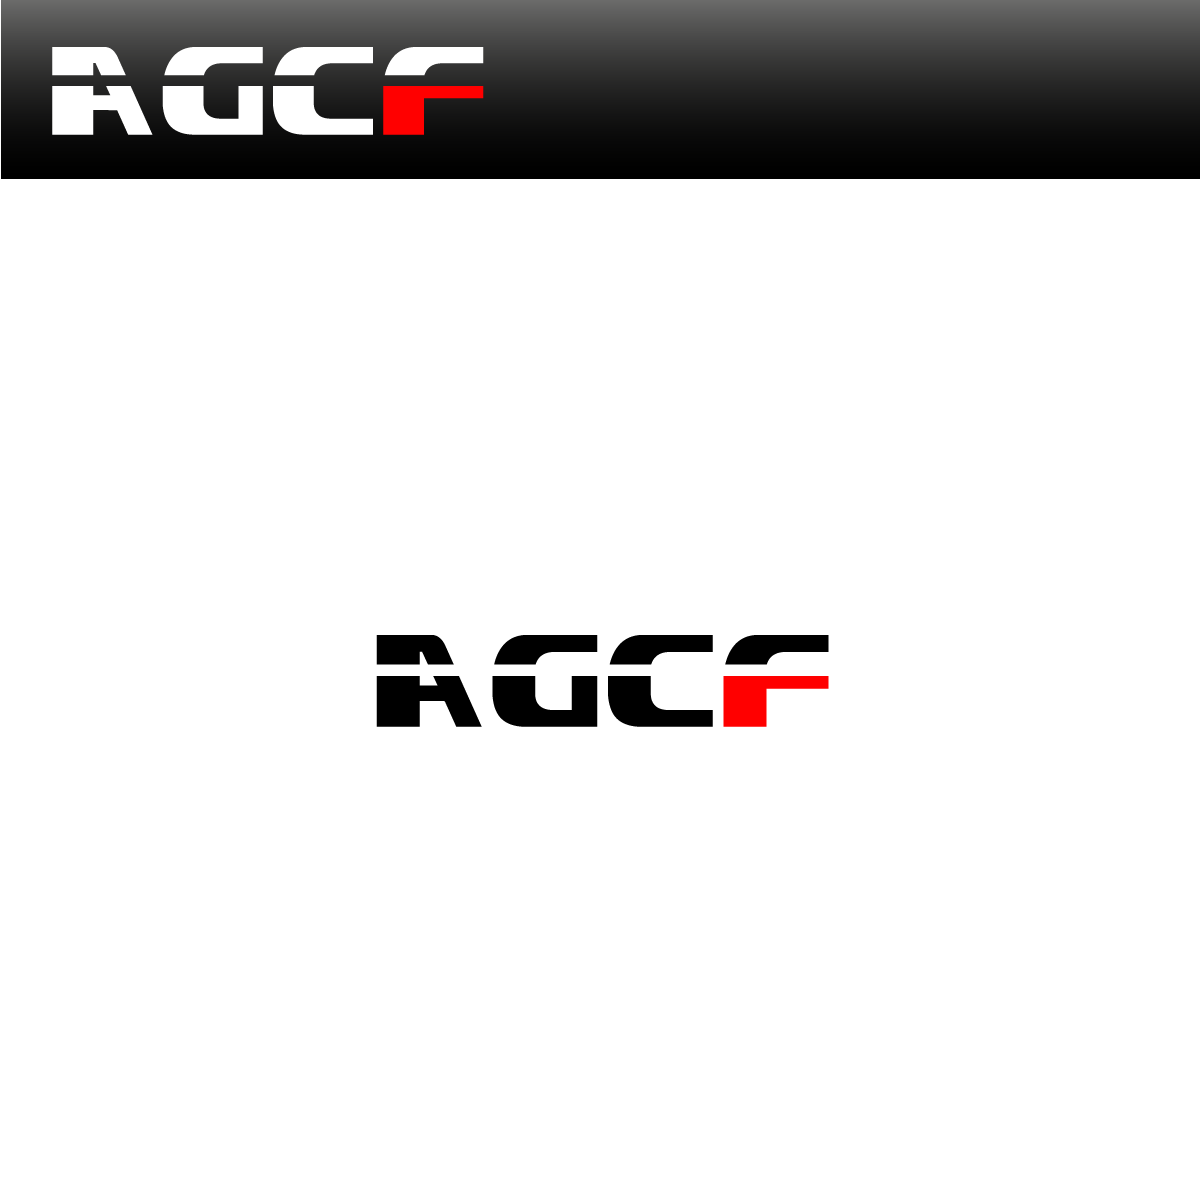 Logo Design by rockin - Entry No. 106 in the Logo Design Contest Imaginative Logo Design for AGCF.